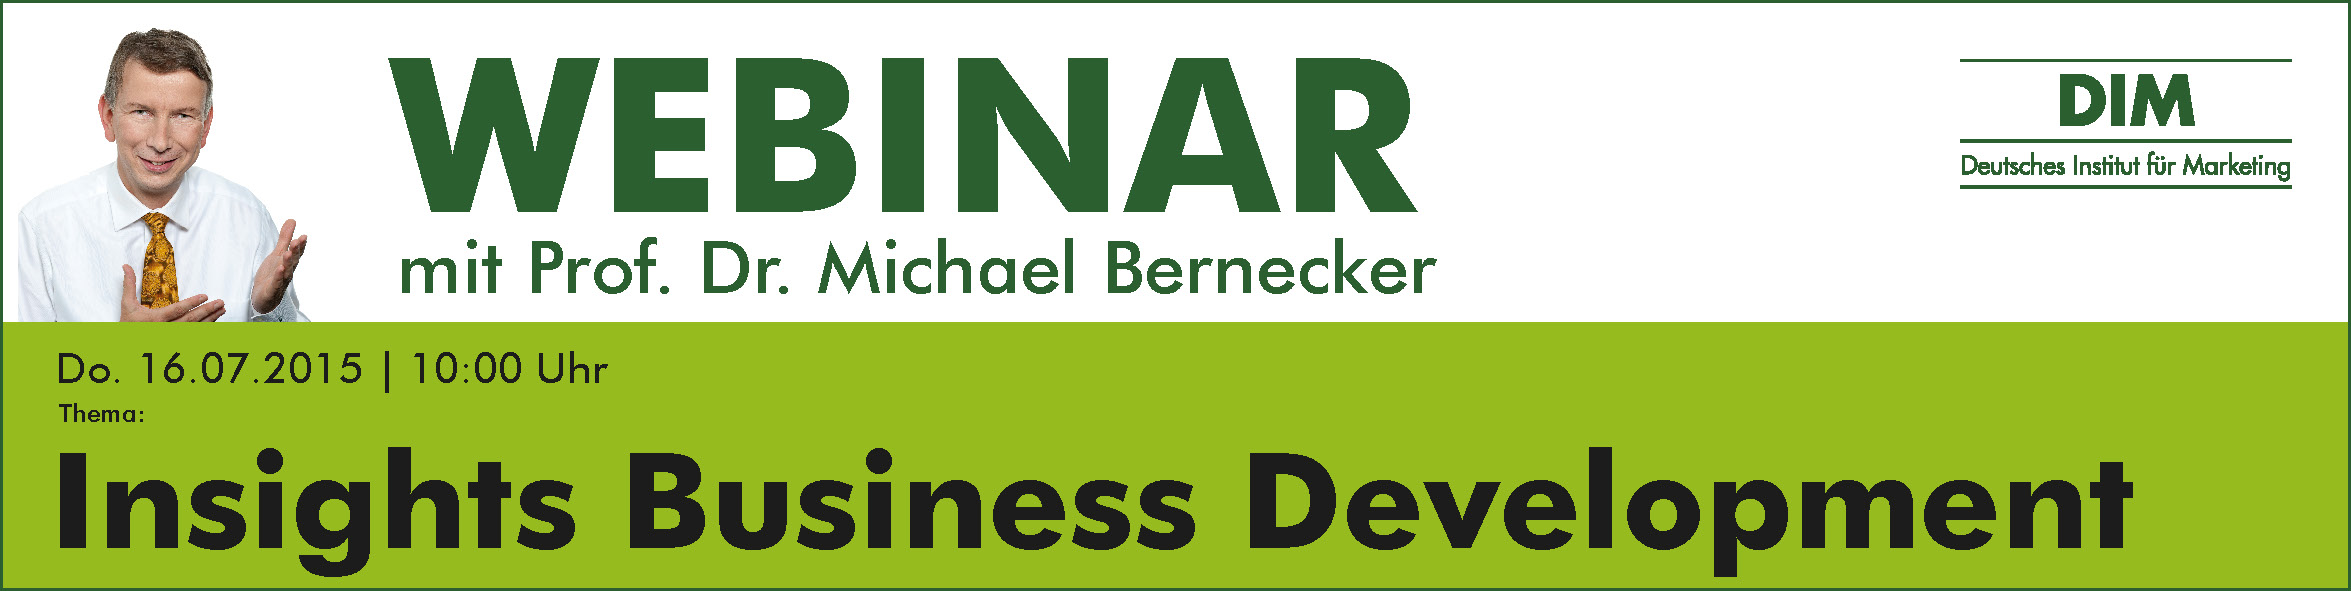 150707.Banner_Webinar_Insights_Business_Development